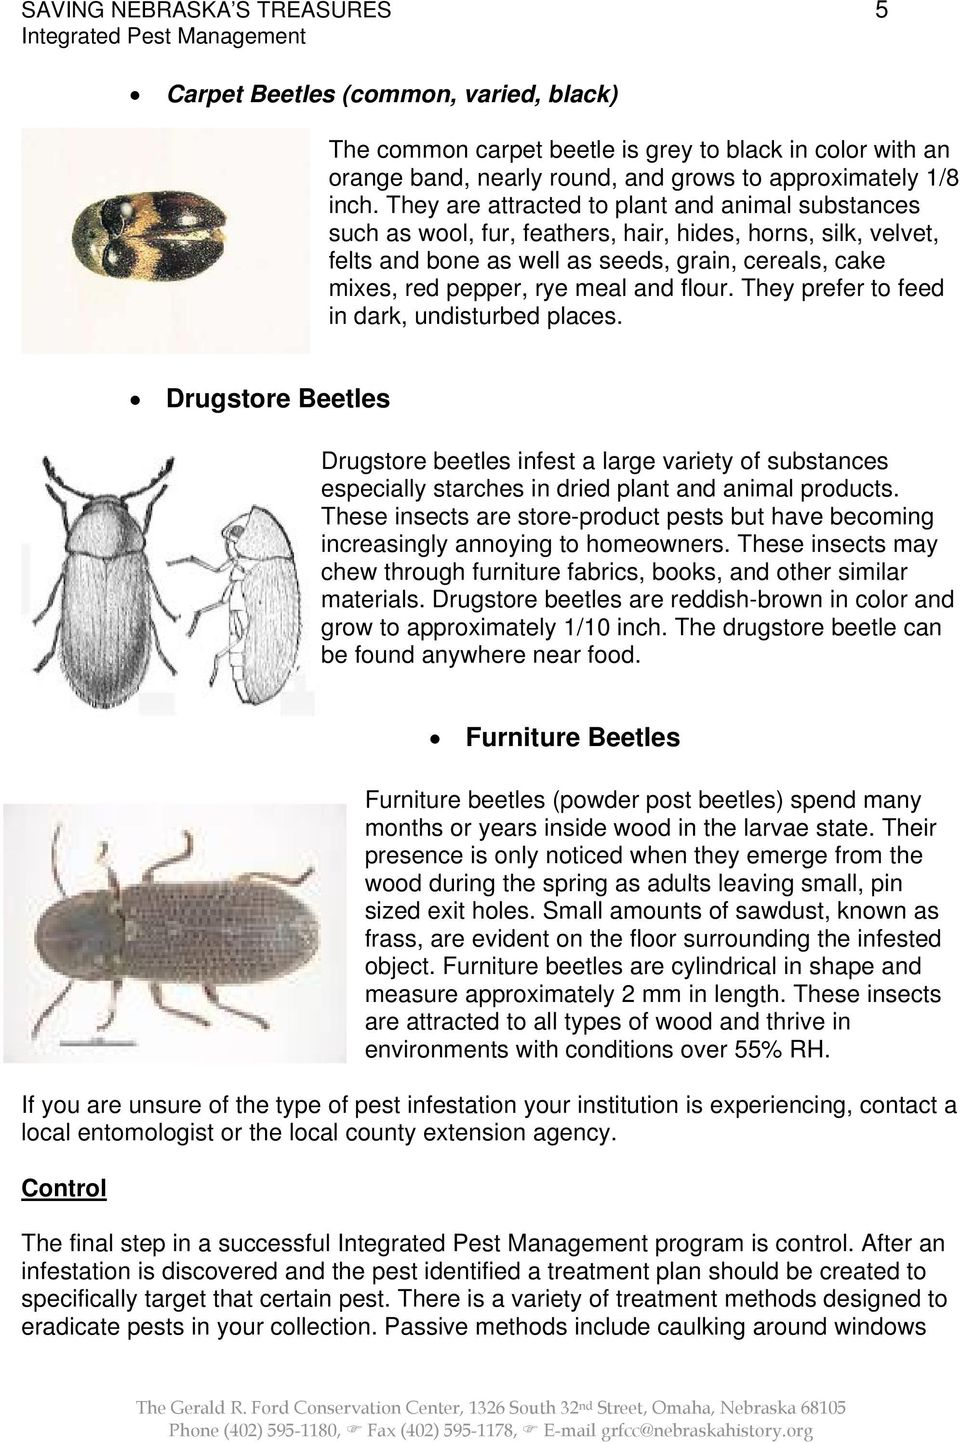 flour. They prefer to feed in dark, undisturbed places. Drugstore Beetles Drugstore beetles infest a large variety of substances especially starches in dried plant and animal products.